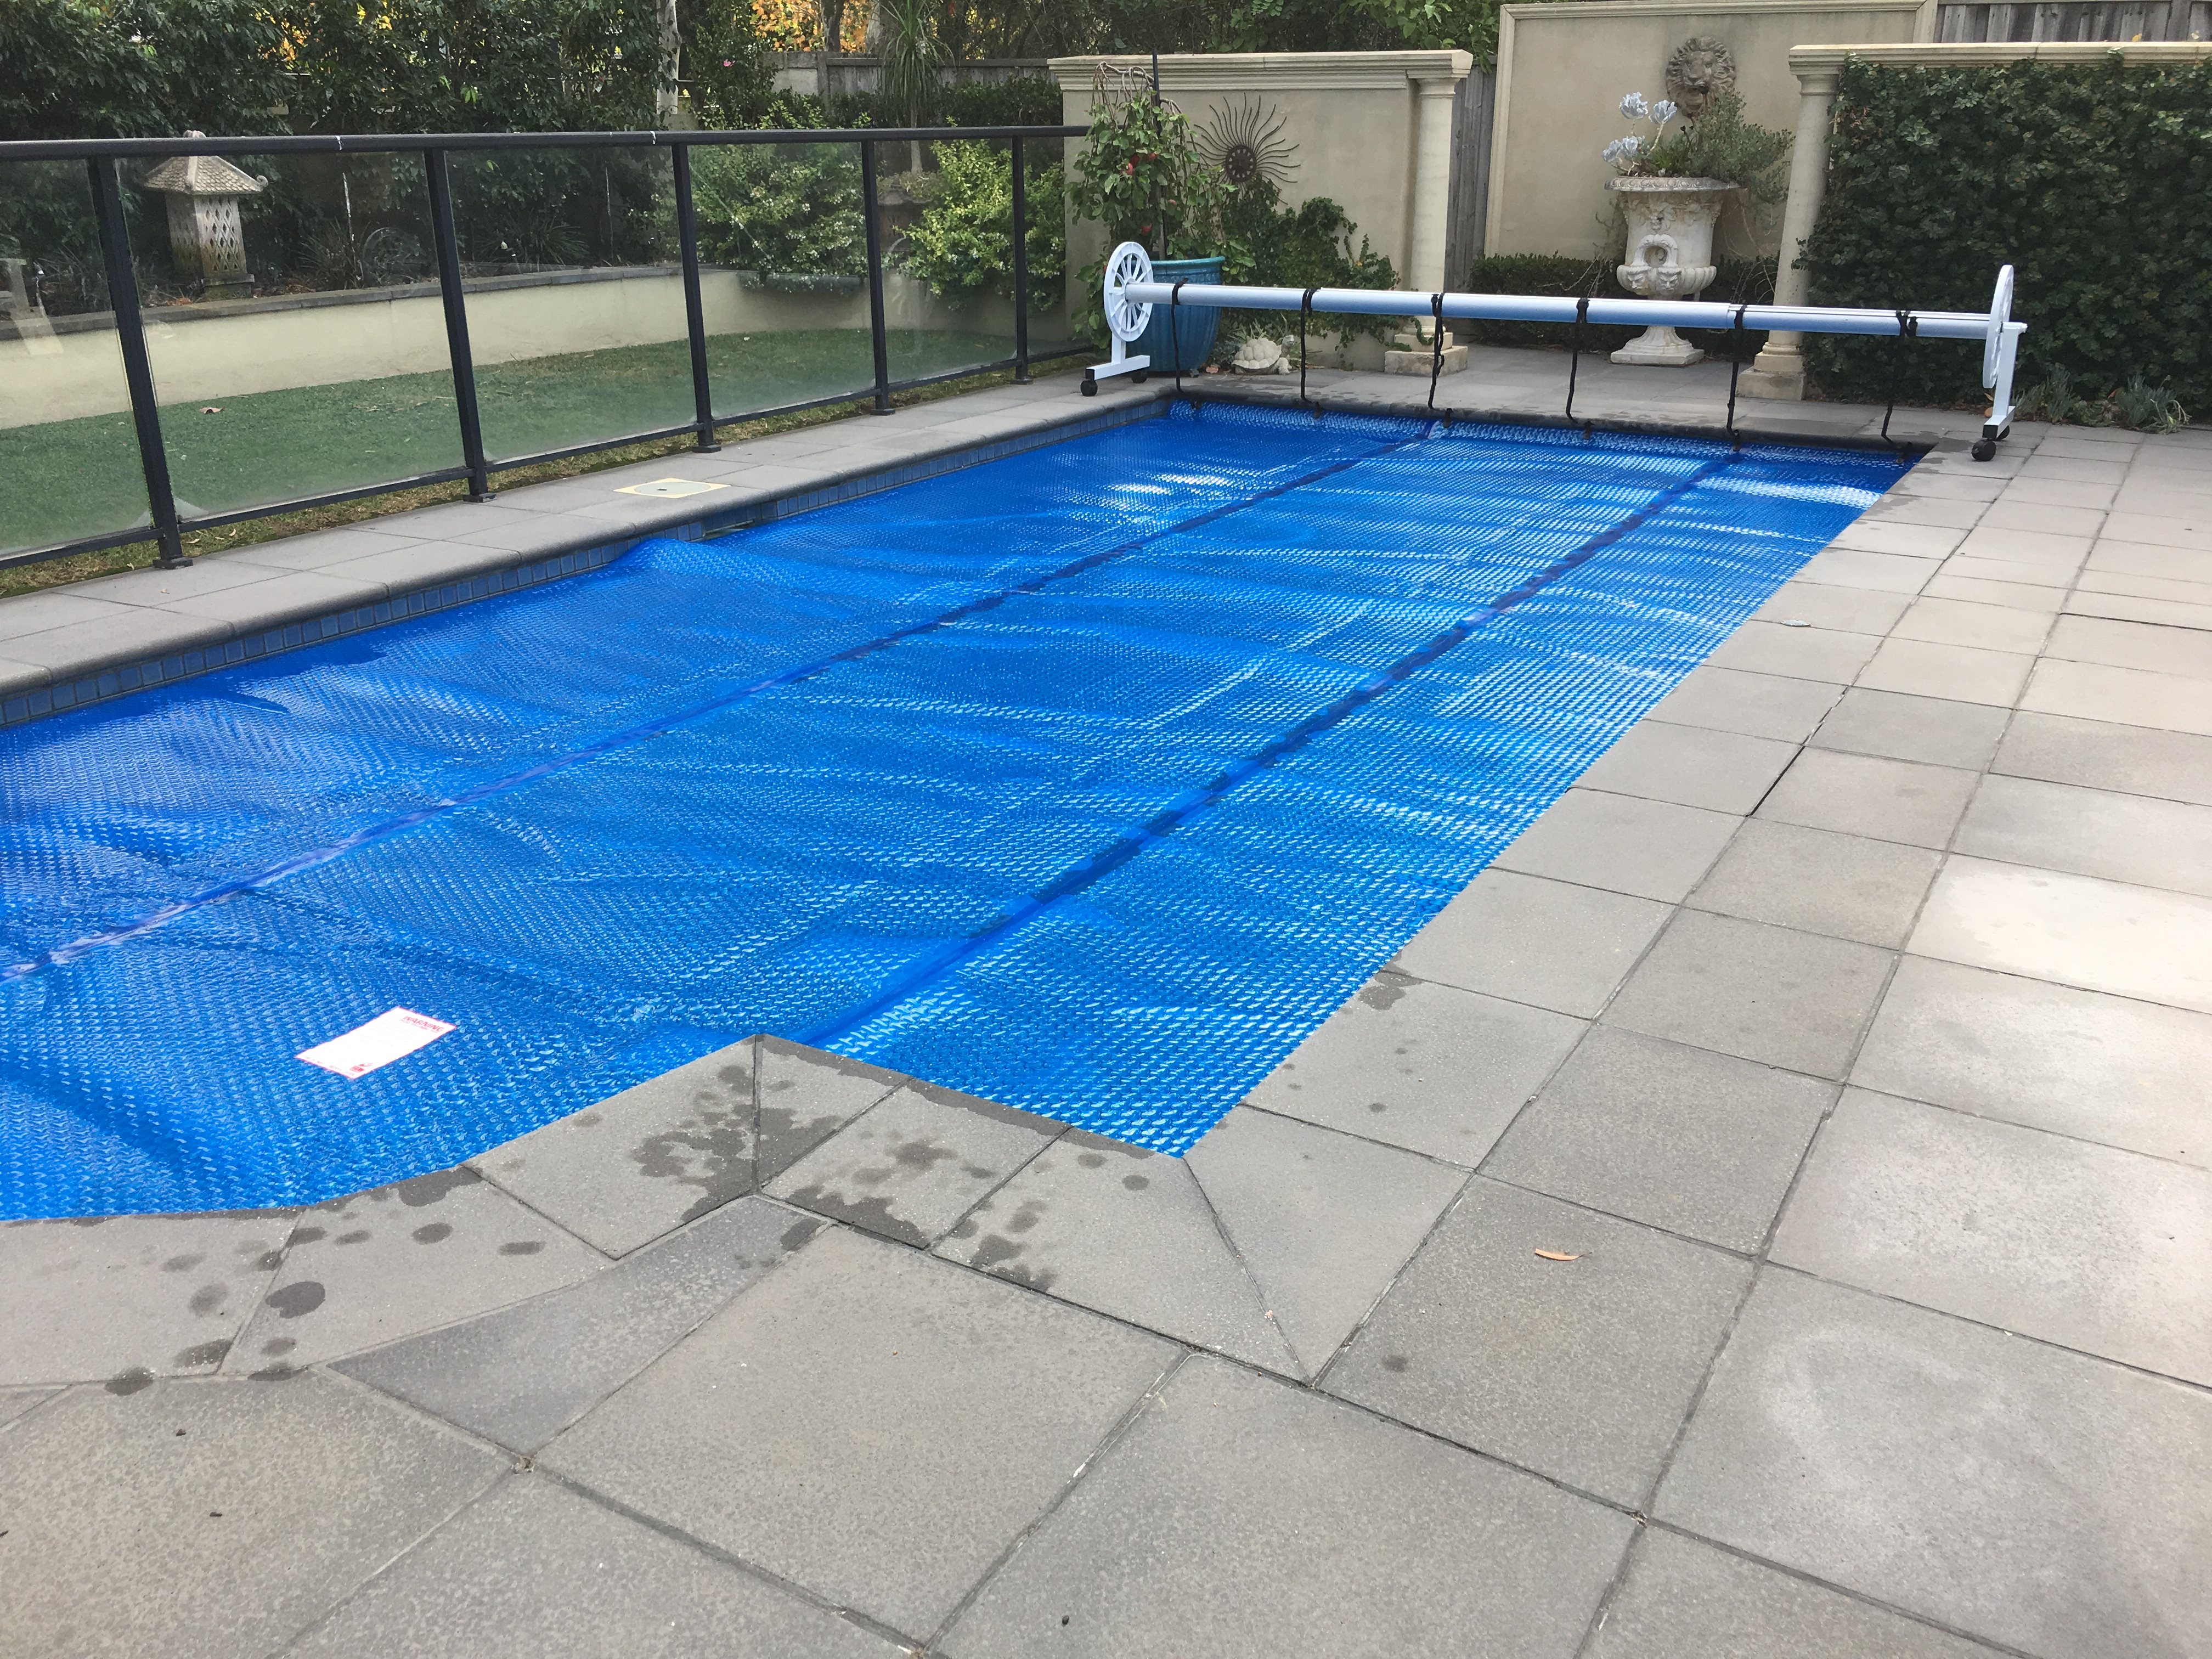 Triple cell aqua pool covers melbourne australia for Swimming pool covers melbourne